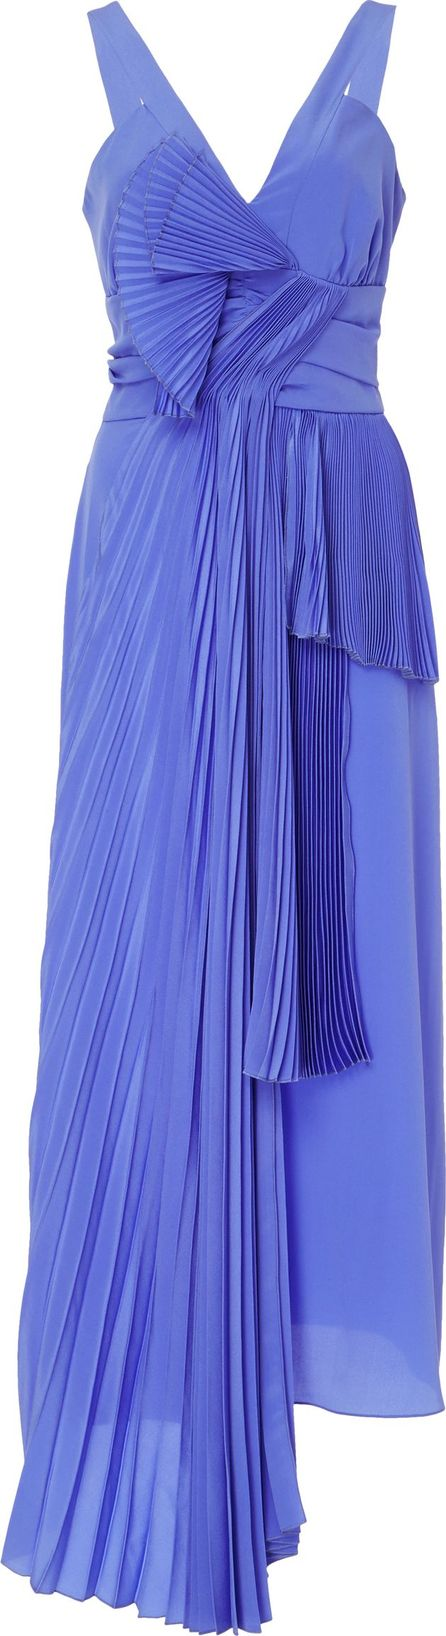 ROCHAS Pleated Silk Dress